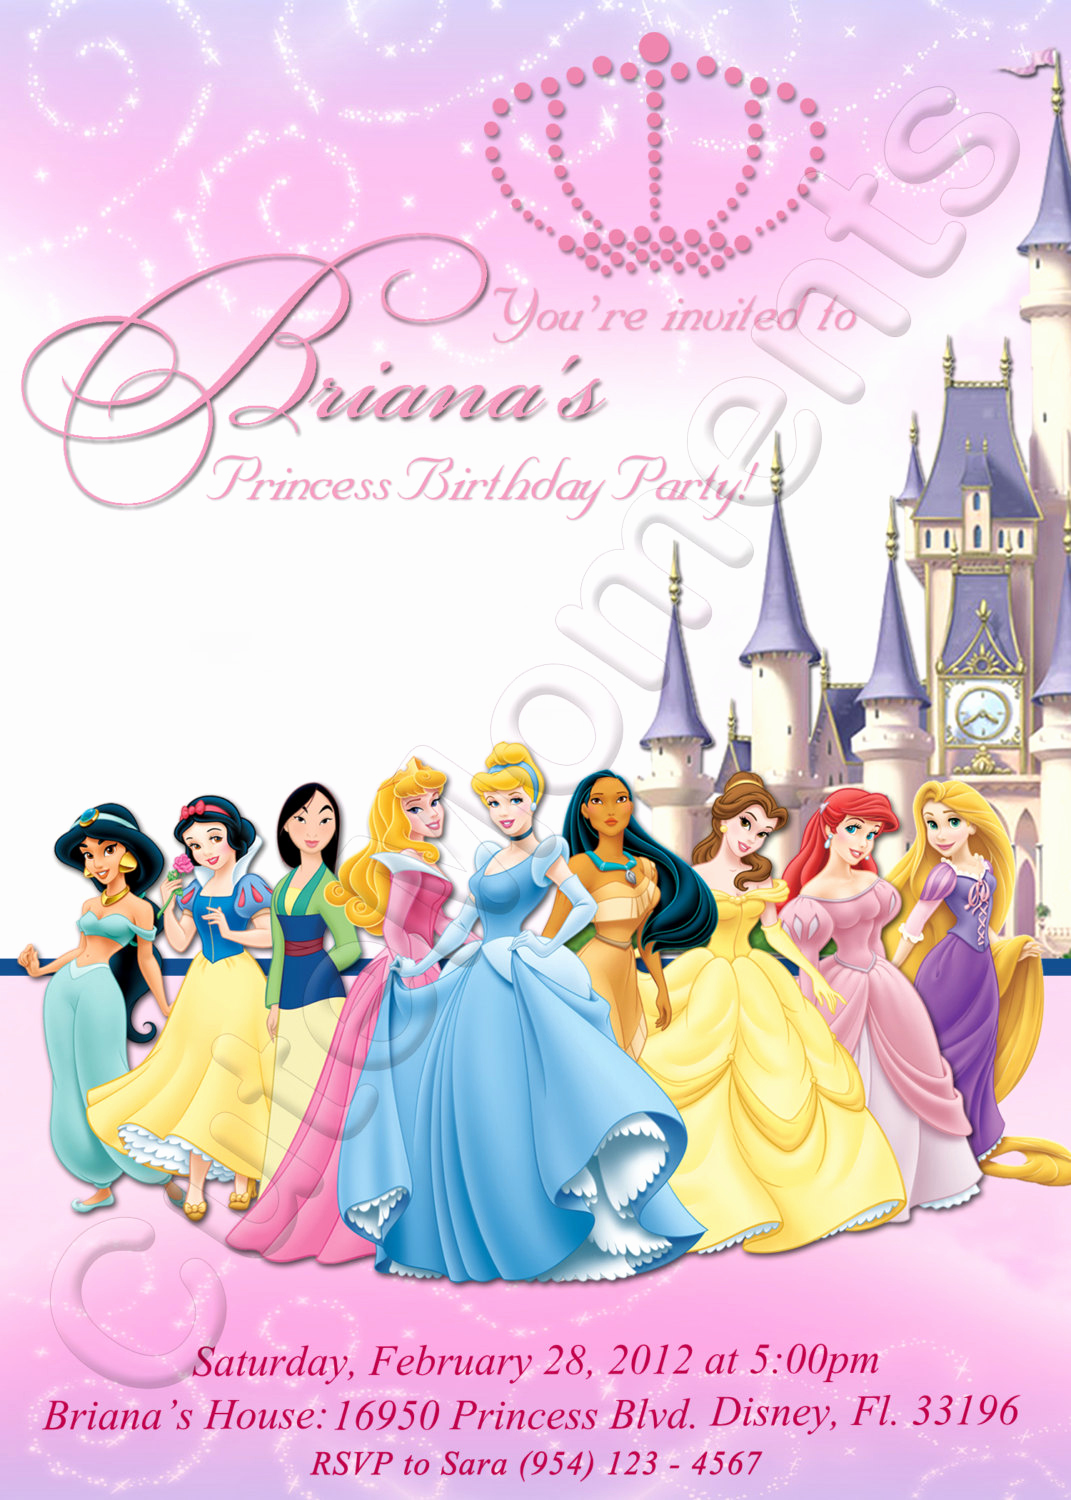 Disney Princess Invitation Template Best Of 40th Birthday Ideas Disney Princess Birthday Party